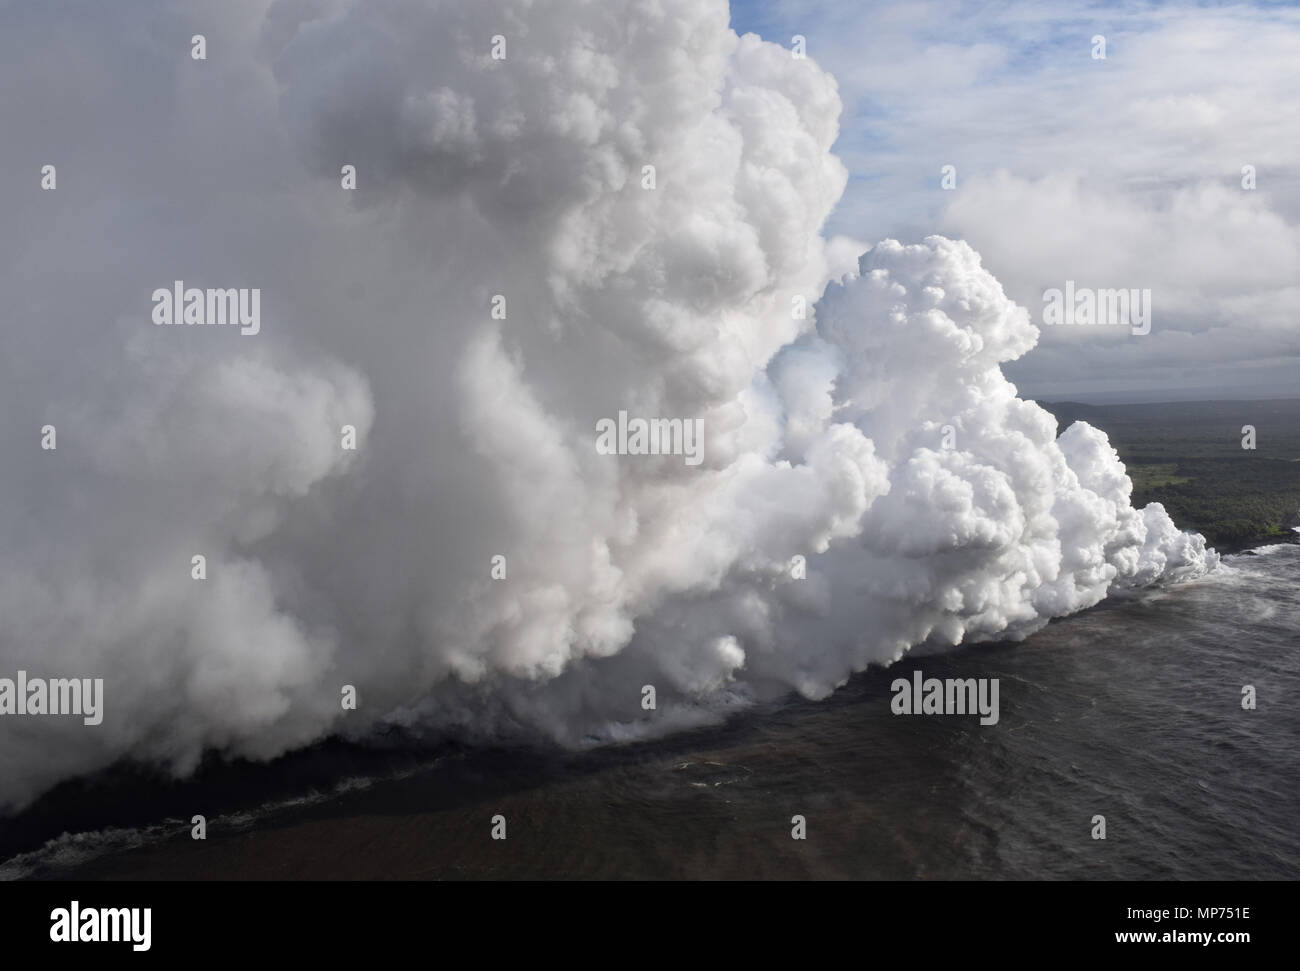 "Hawaii, USA. 20th May 2018. Lava and poisonous sulfur dioxide plumes rise from fissure 20 as the molten magma reaches the ocean from the eruption of the Kilauea volcano May 20, 2018 in Pahoa, Hawaii. Hot lava entering the ocean creates a dense white plume called ""laze"" (short for ""lava haze""). Laze is formed as hot lava boils seawater to dryness. Credit: Planetpix/Alamy Live News Stock Photo"